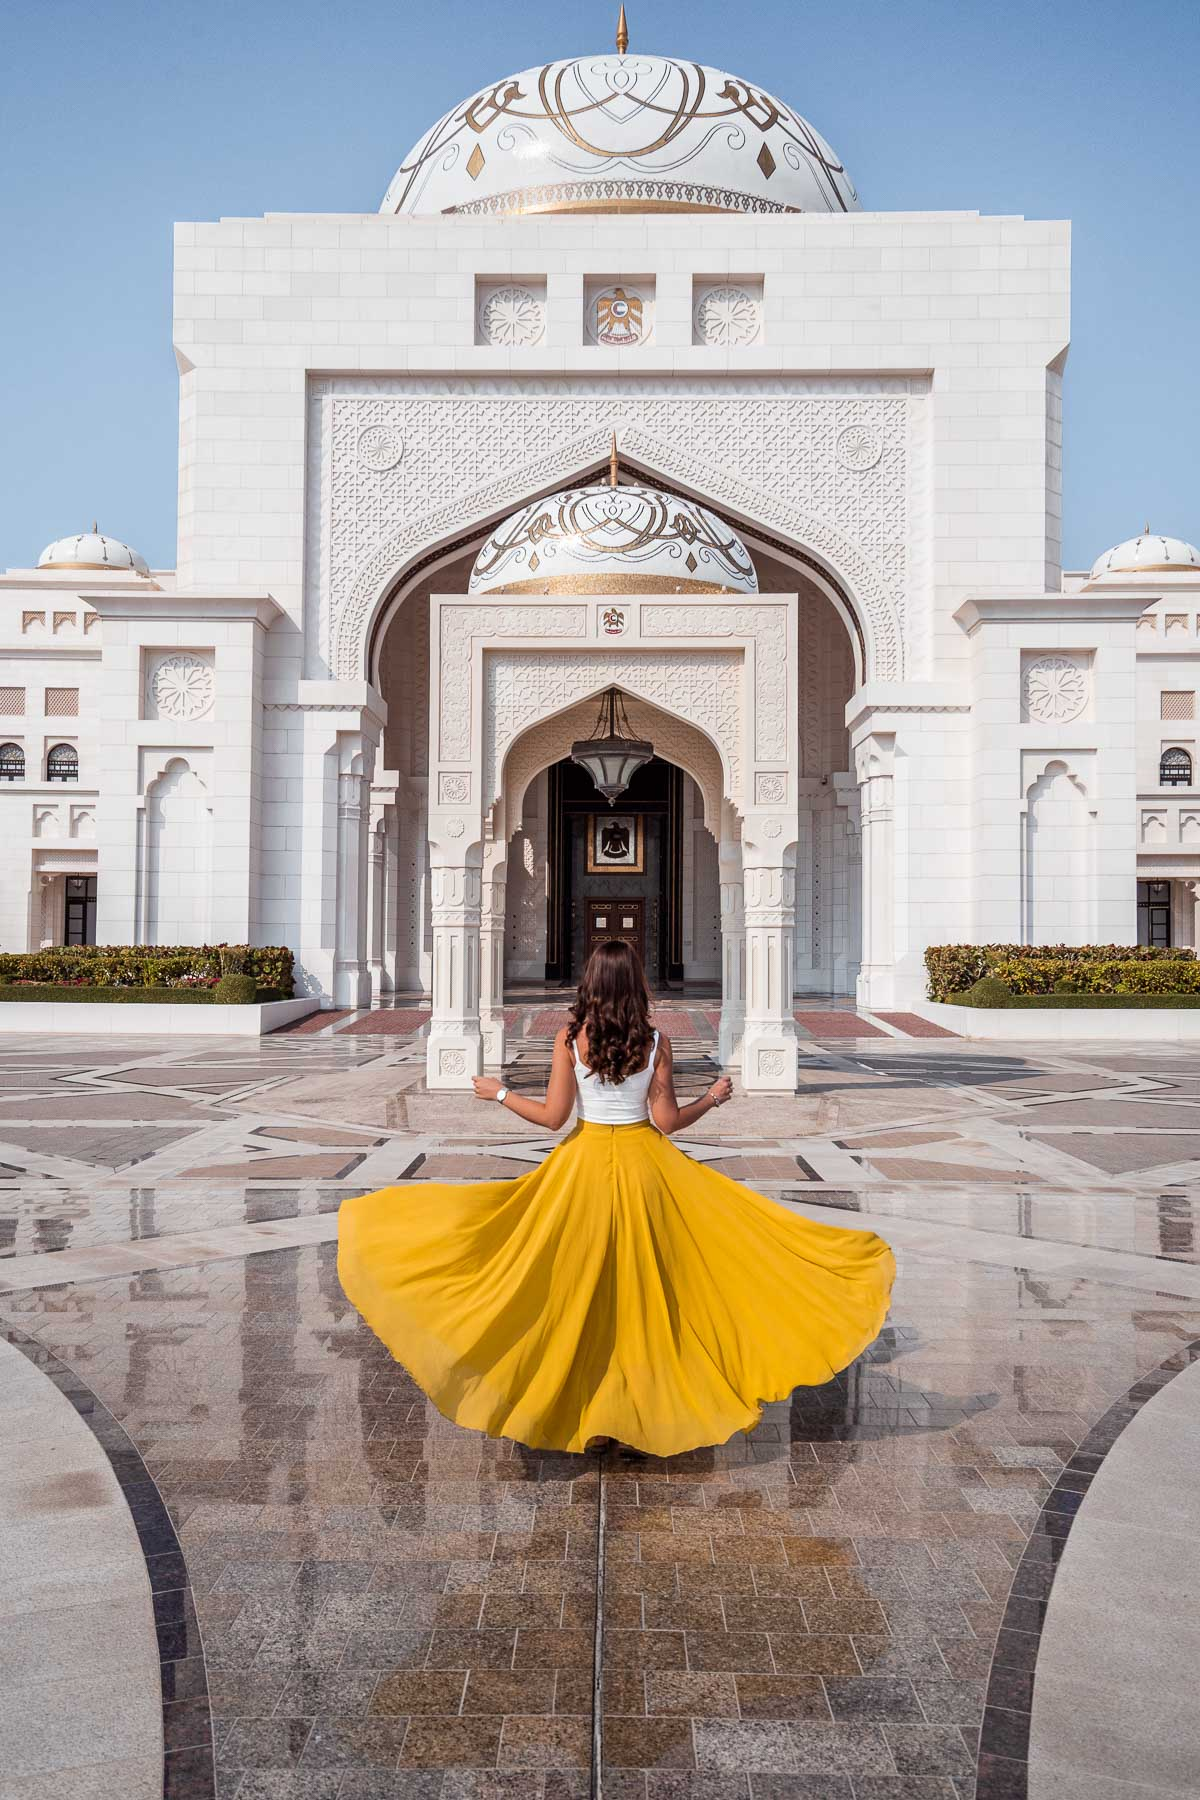 Girl in a yellow skirt twirling in front of Qasr Al Watan Palace in Abu Dhabi